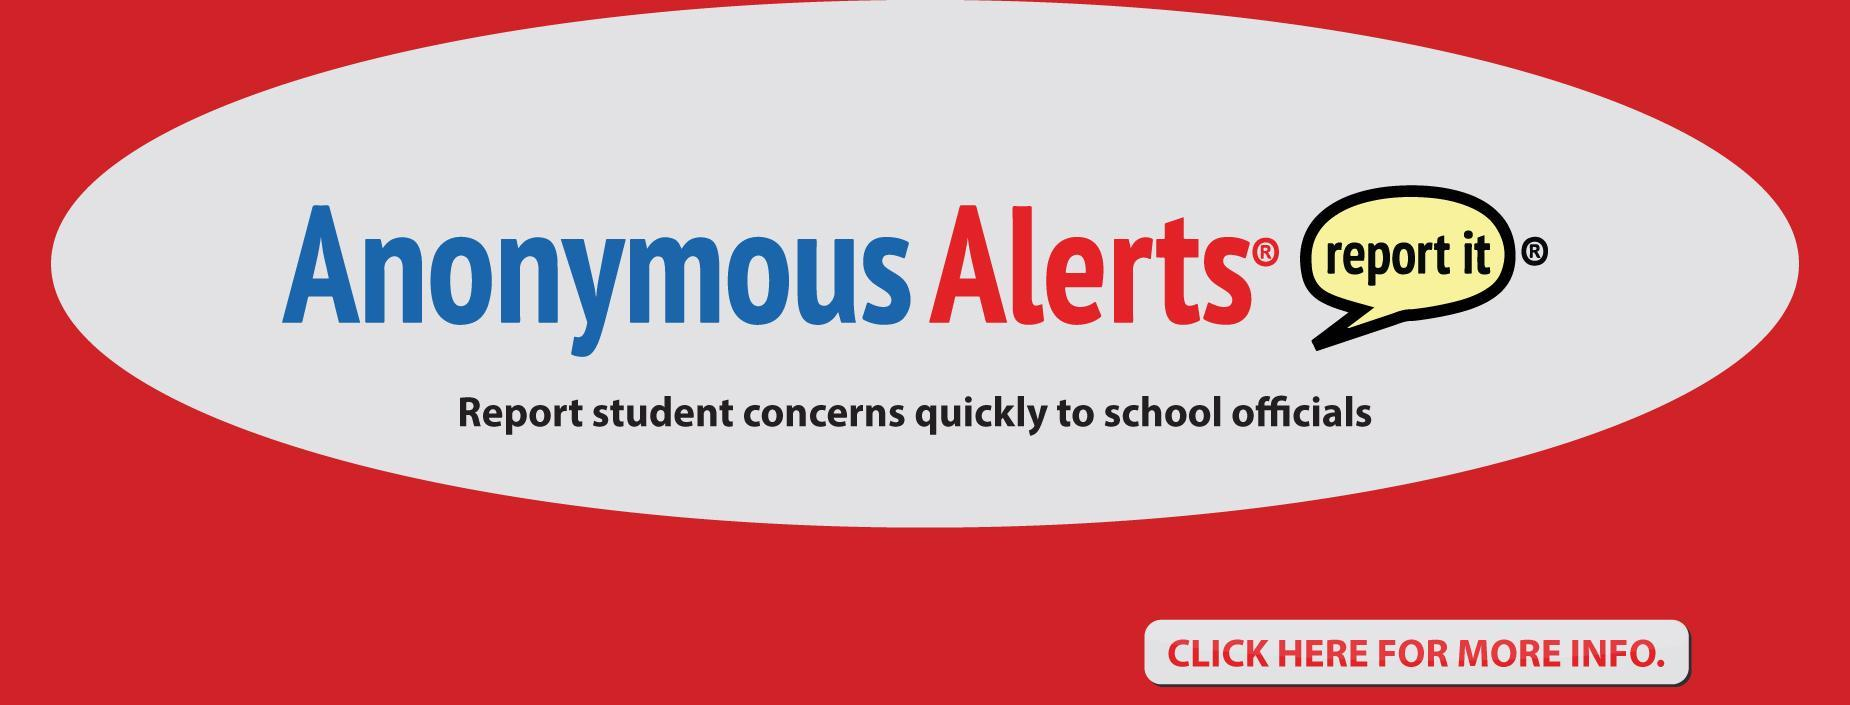 Anonymous Alerts Report Students Concerns Banner